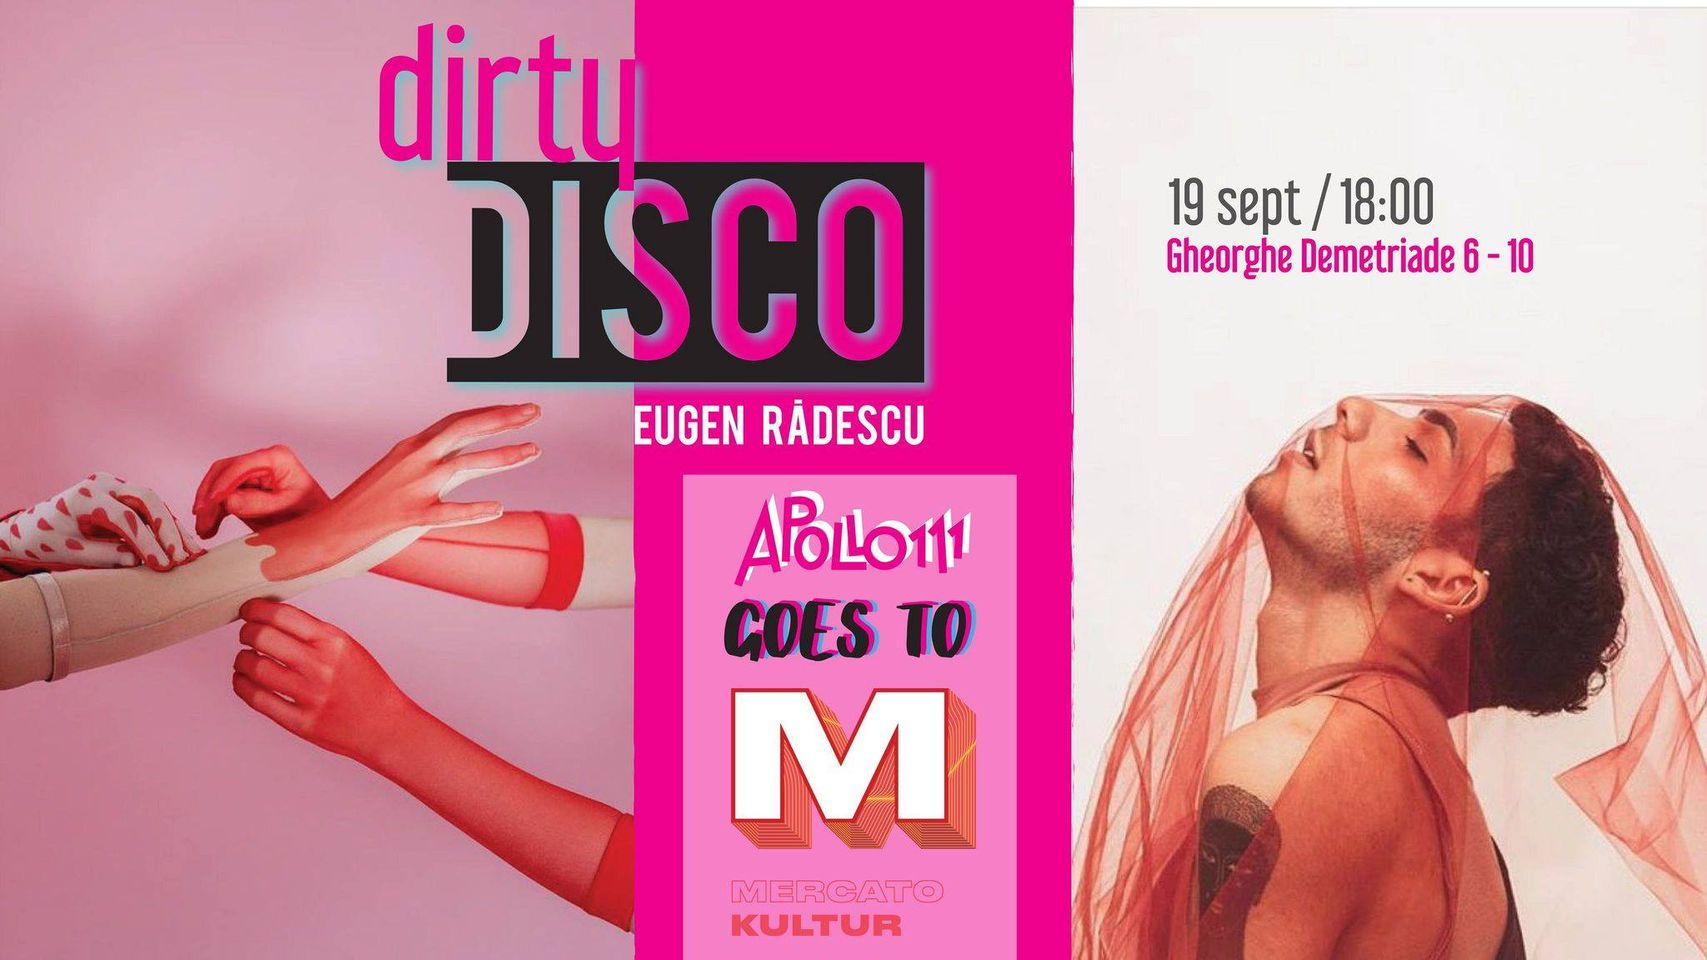 evenimente weekend 18-20 sept  dirty disco cu eugen radescu la mercato kultur